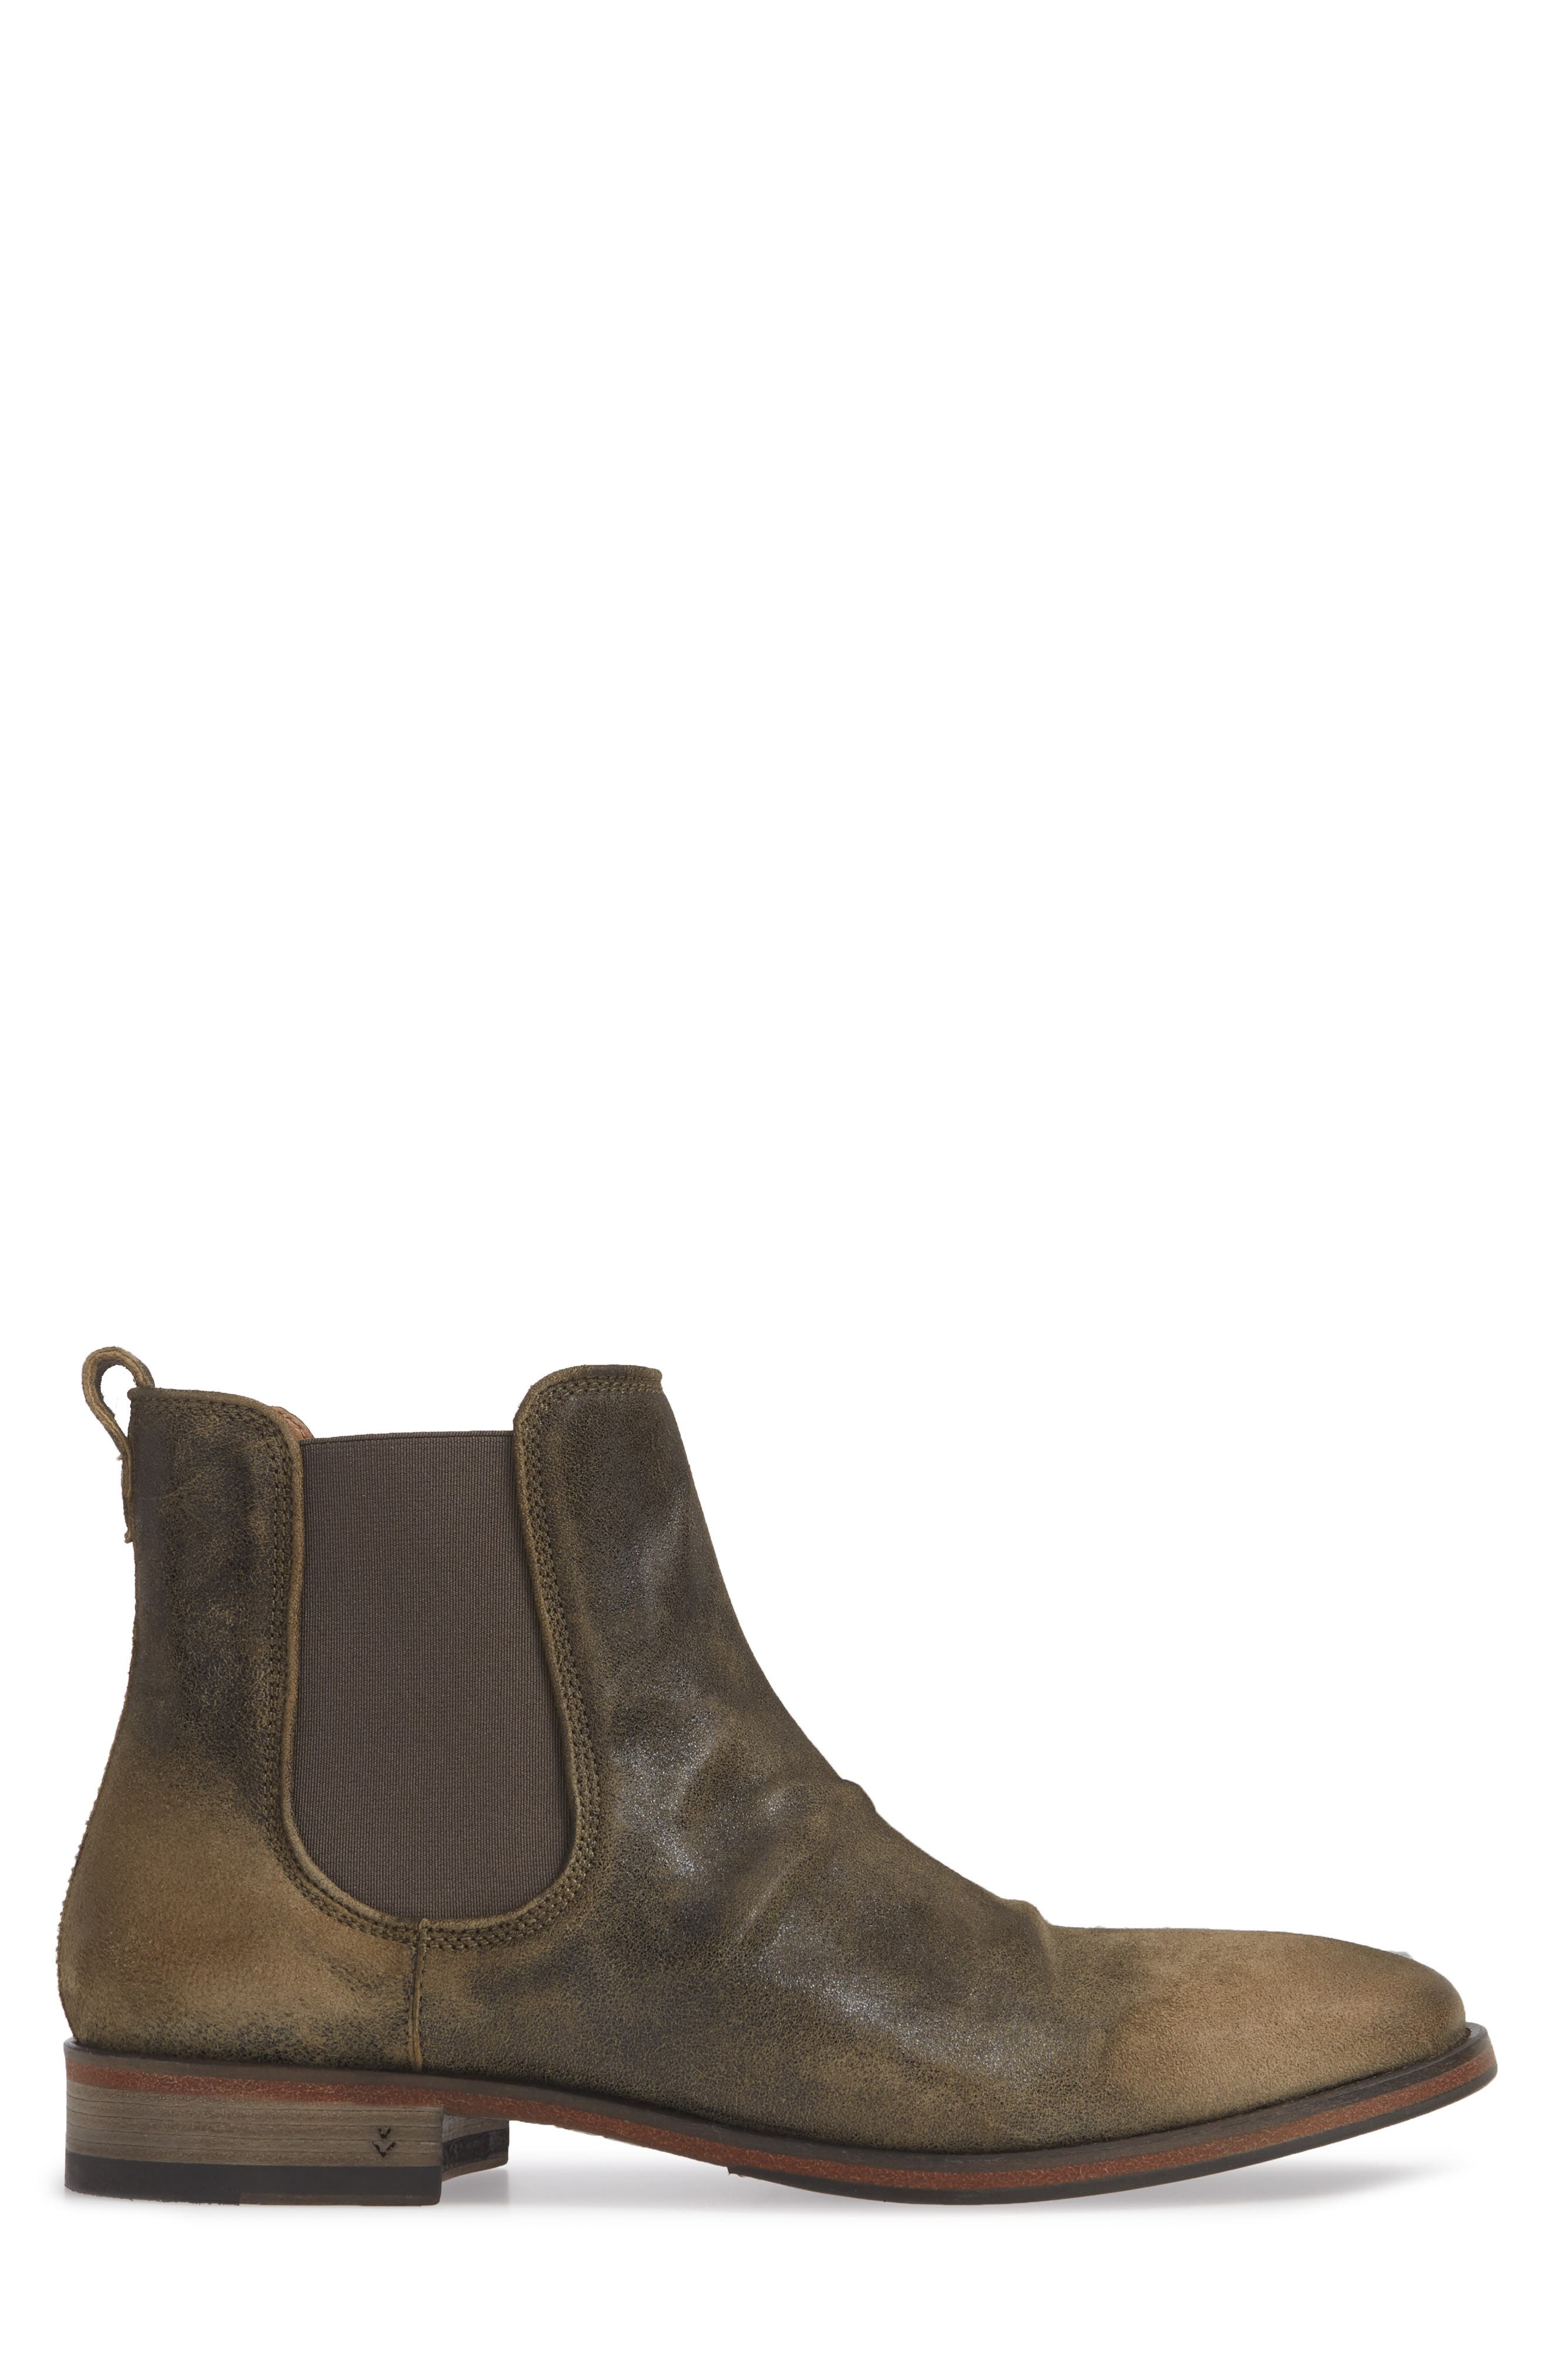 JOHN VARVATOS COLLECTION, Fleetwood Chelsea Boot, Alternate thumbnail 3, color, 237